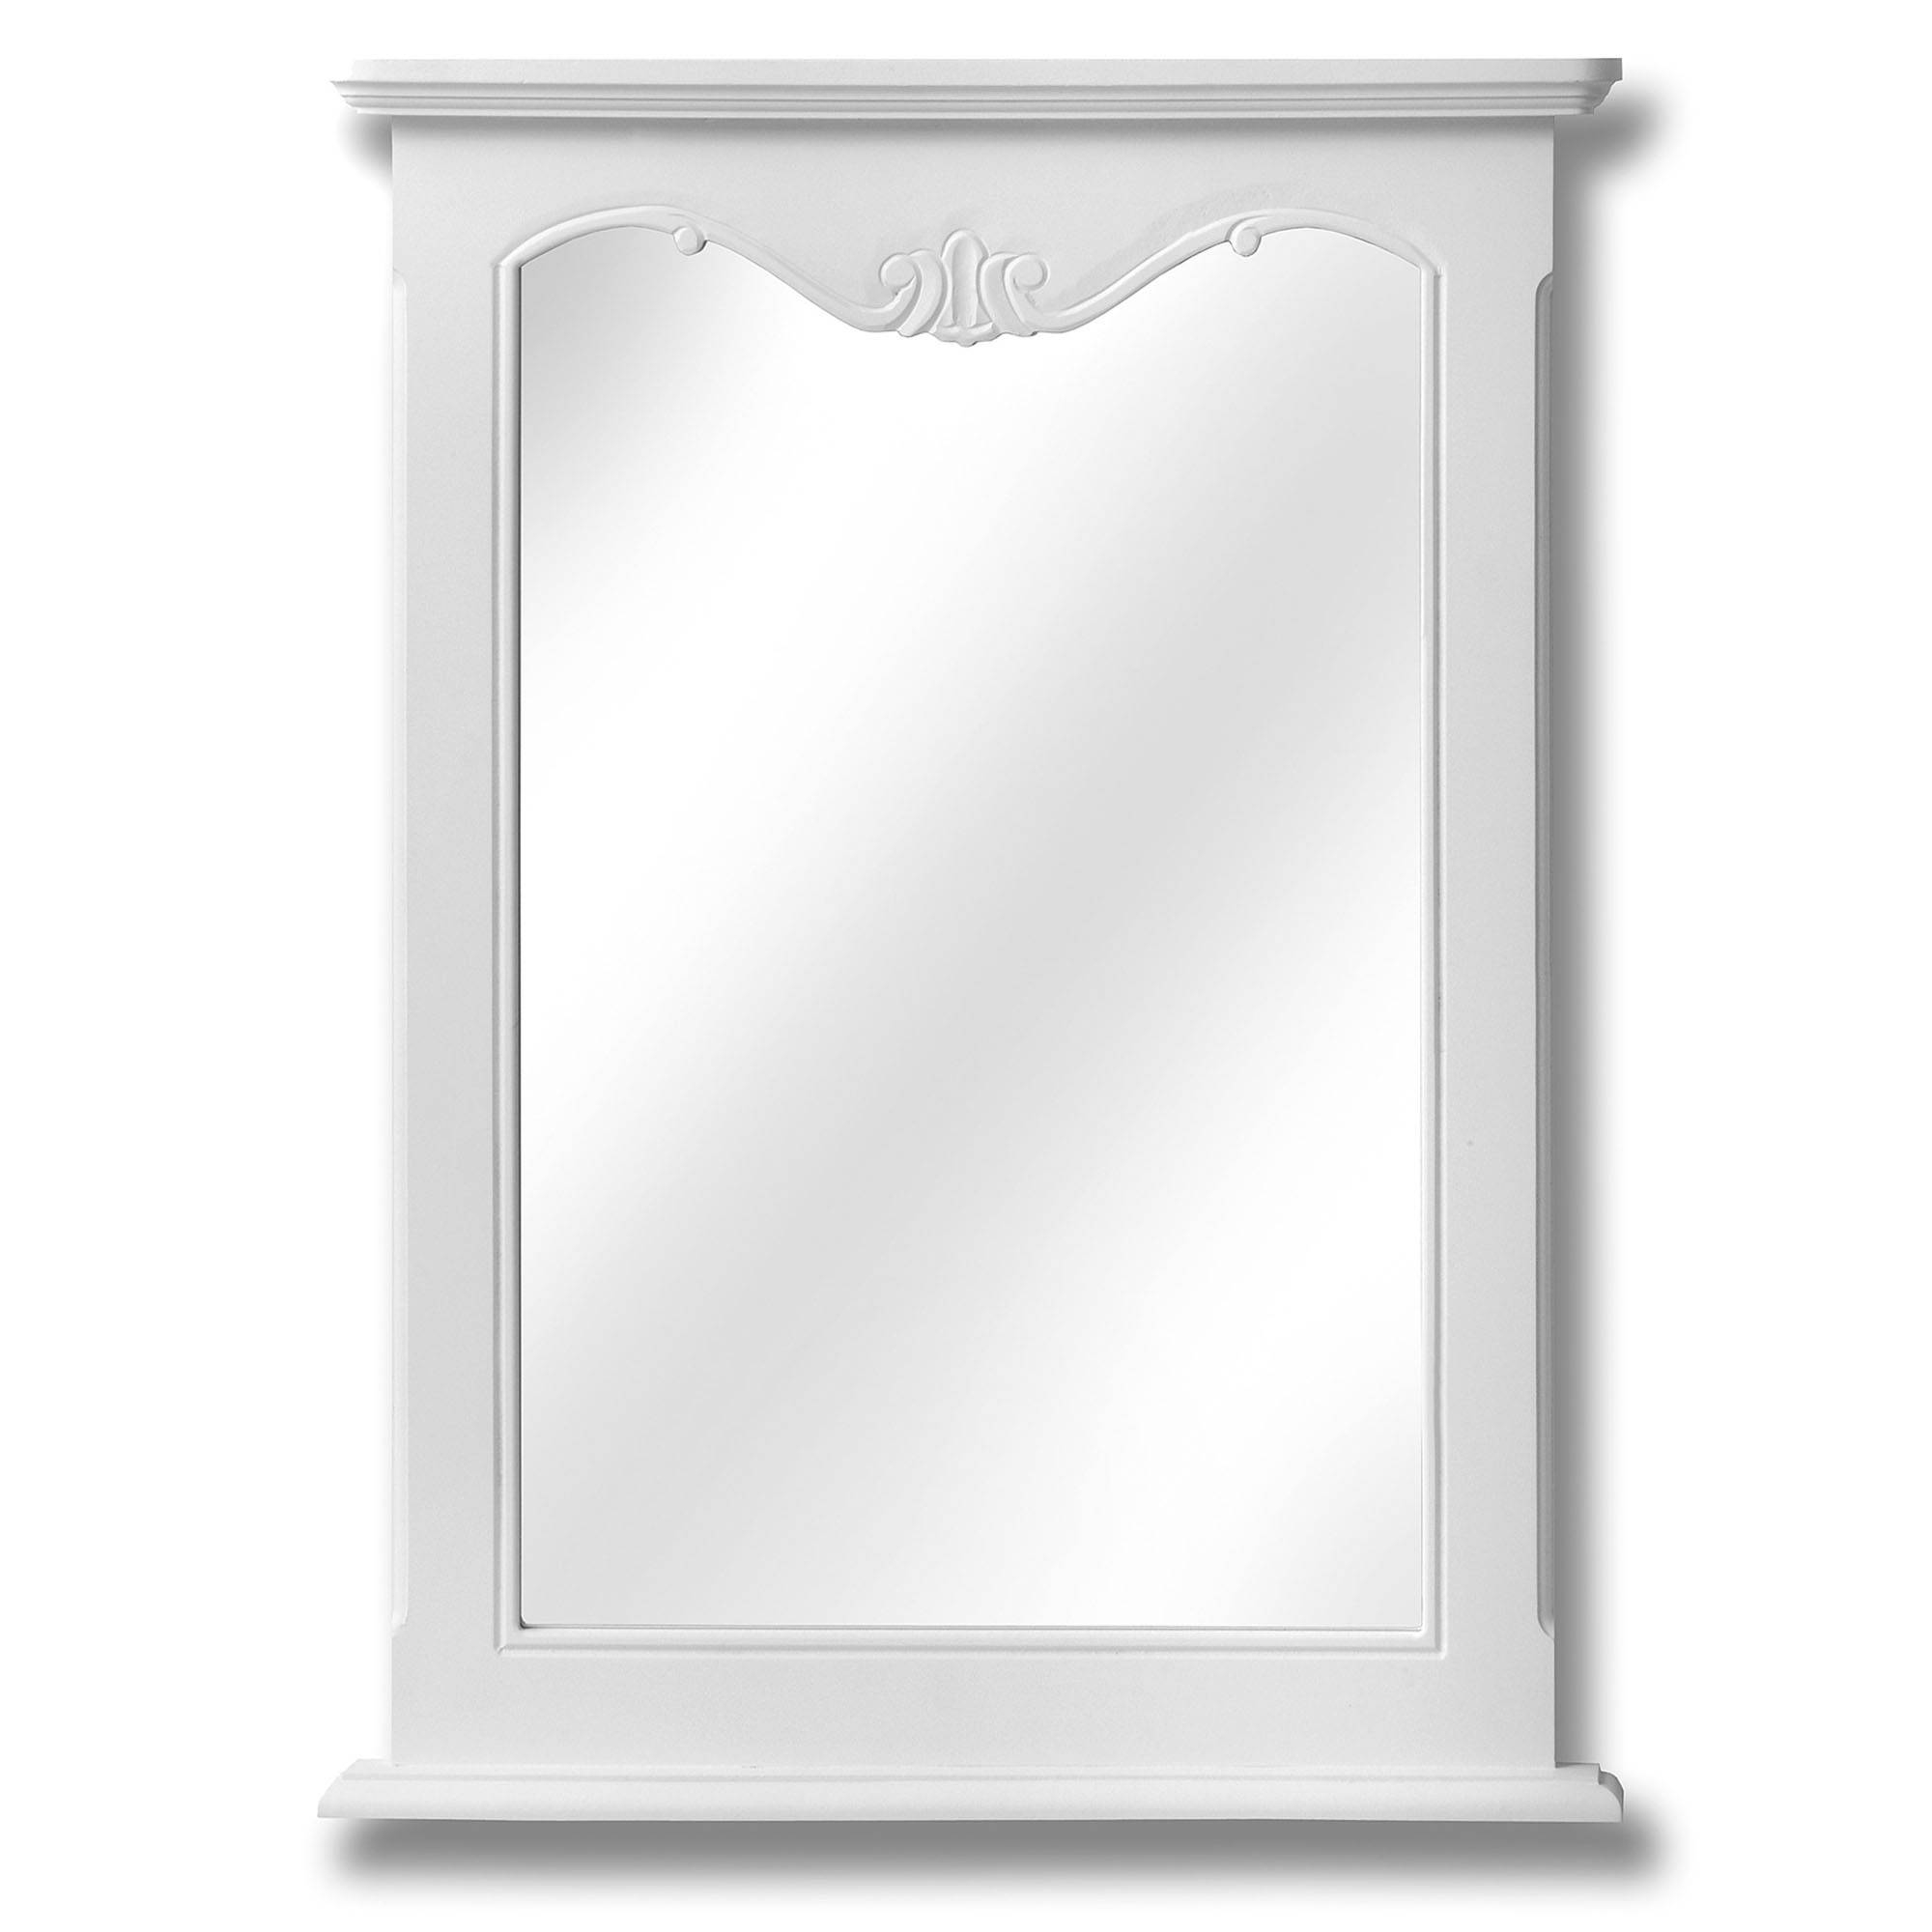 Fleur White Shabby Chic Wall Mirror | Mirrors | Homesdirect365 throughout White Shabby Chic Wall Mirrors (Image 5 of 25)